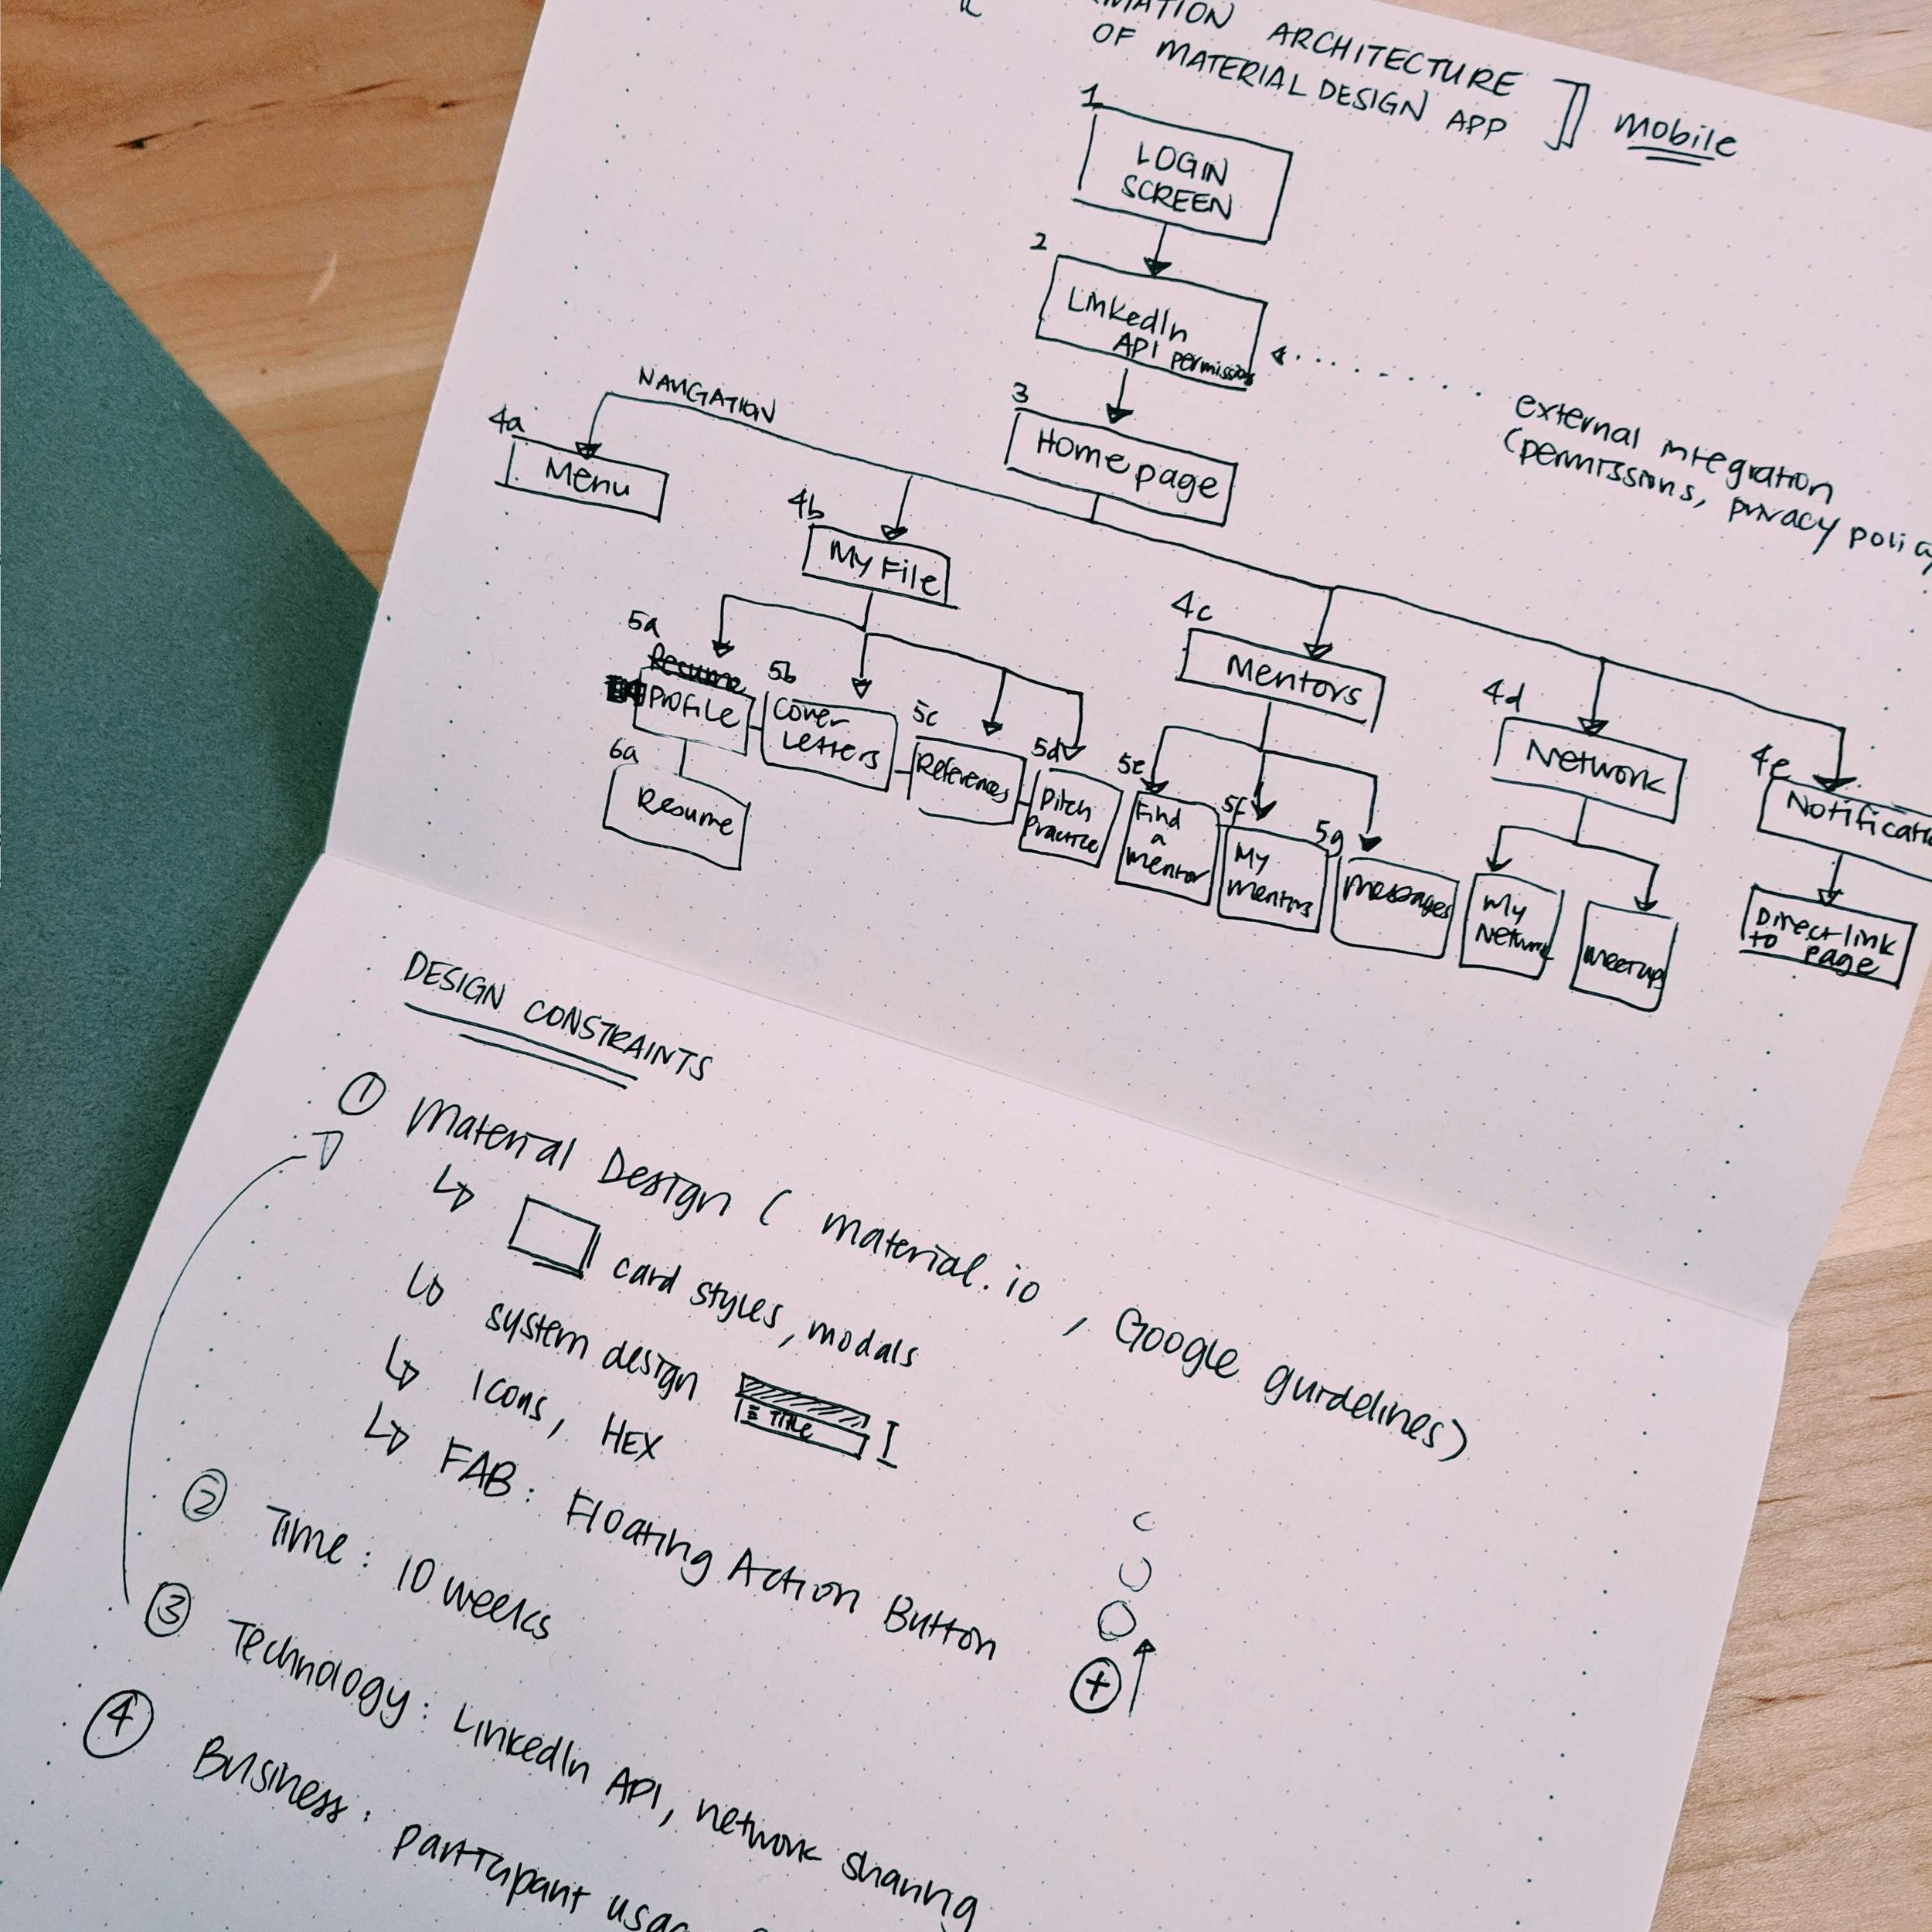 INFORMATION ARCHITECTURE + PROTOTYPING - Developing clear user flows based on real user experiences, spotting opportunities to alleviate pain points.